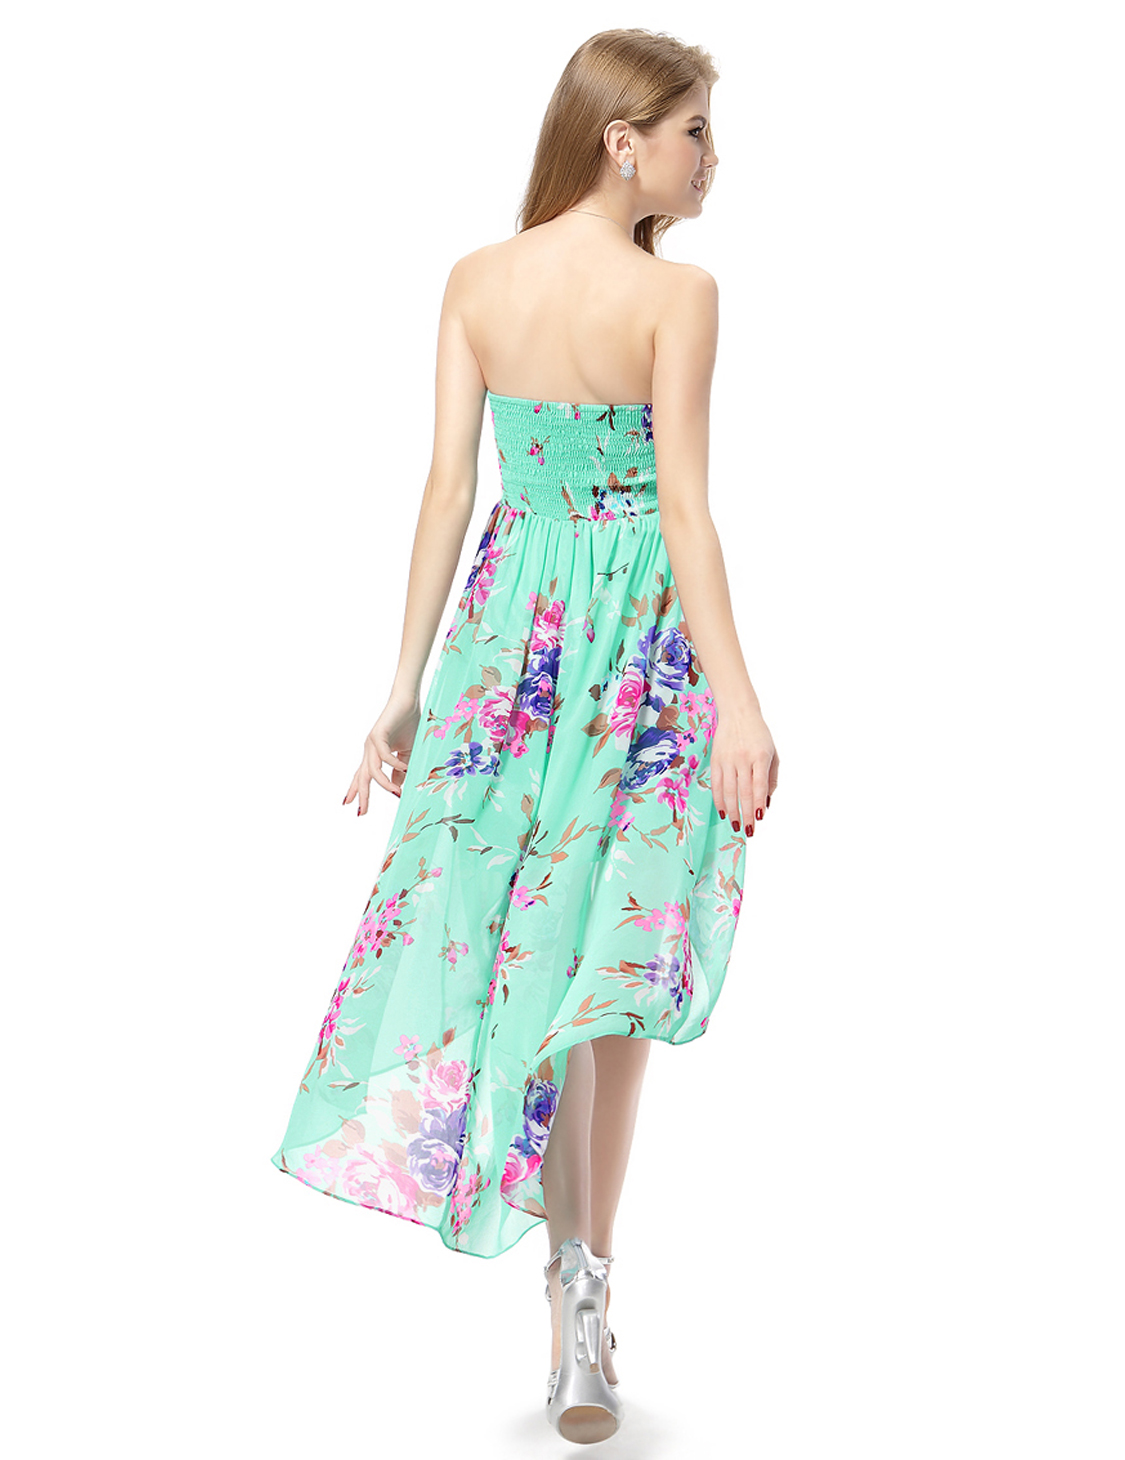 Women's High-low Strapless Floral Summer Beach Holiday ...